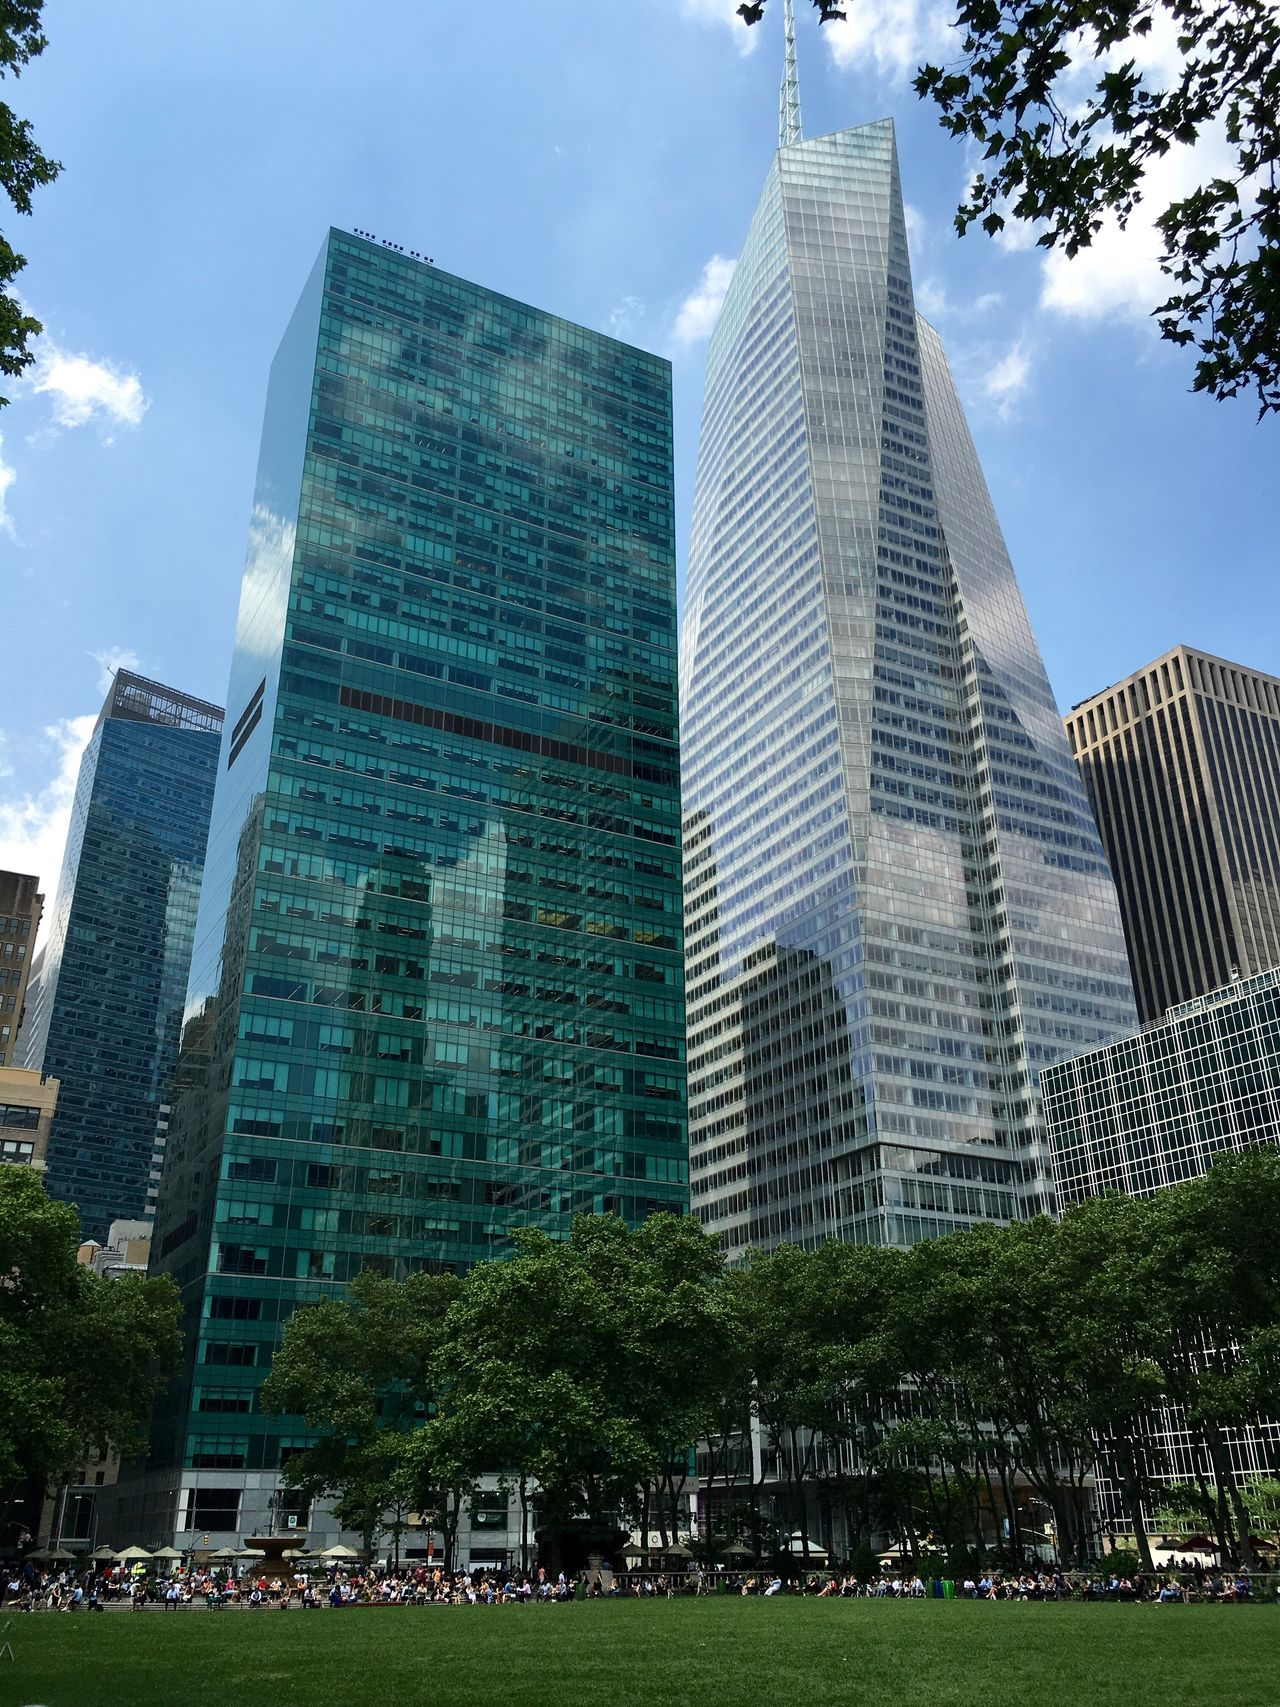 The Architect - 2016 EyeEm Awards Bryant Park NYC Bank Of America Tower Looking Up Blue Sky Skyscrapers Architecture_collection Tranquil Scene